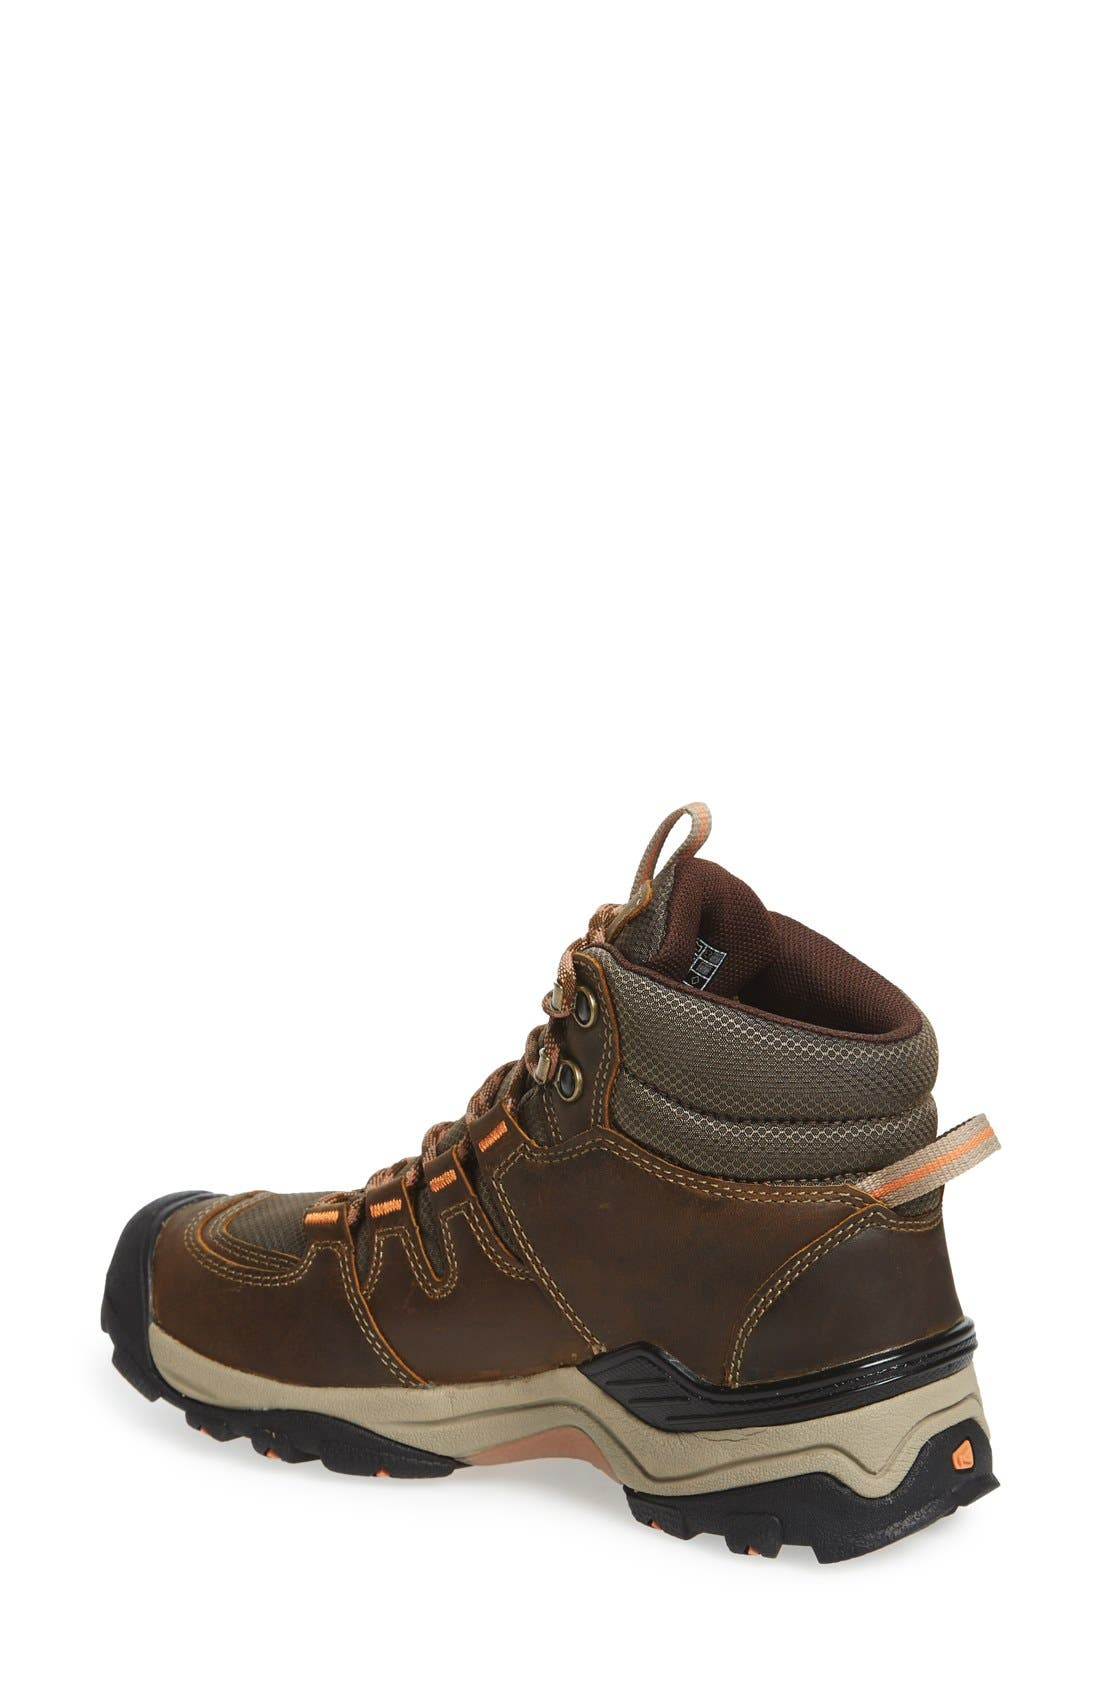 Gypsum II Mid Waterproof Hiking Boot,                             Alternate thumbnail 2, color,                             Cornstock/ Gold Coral